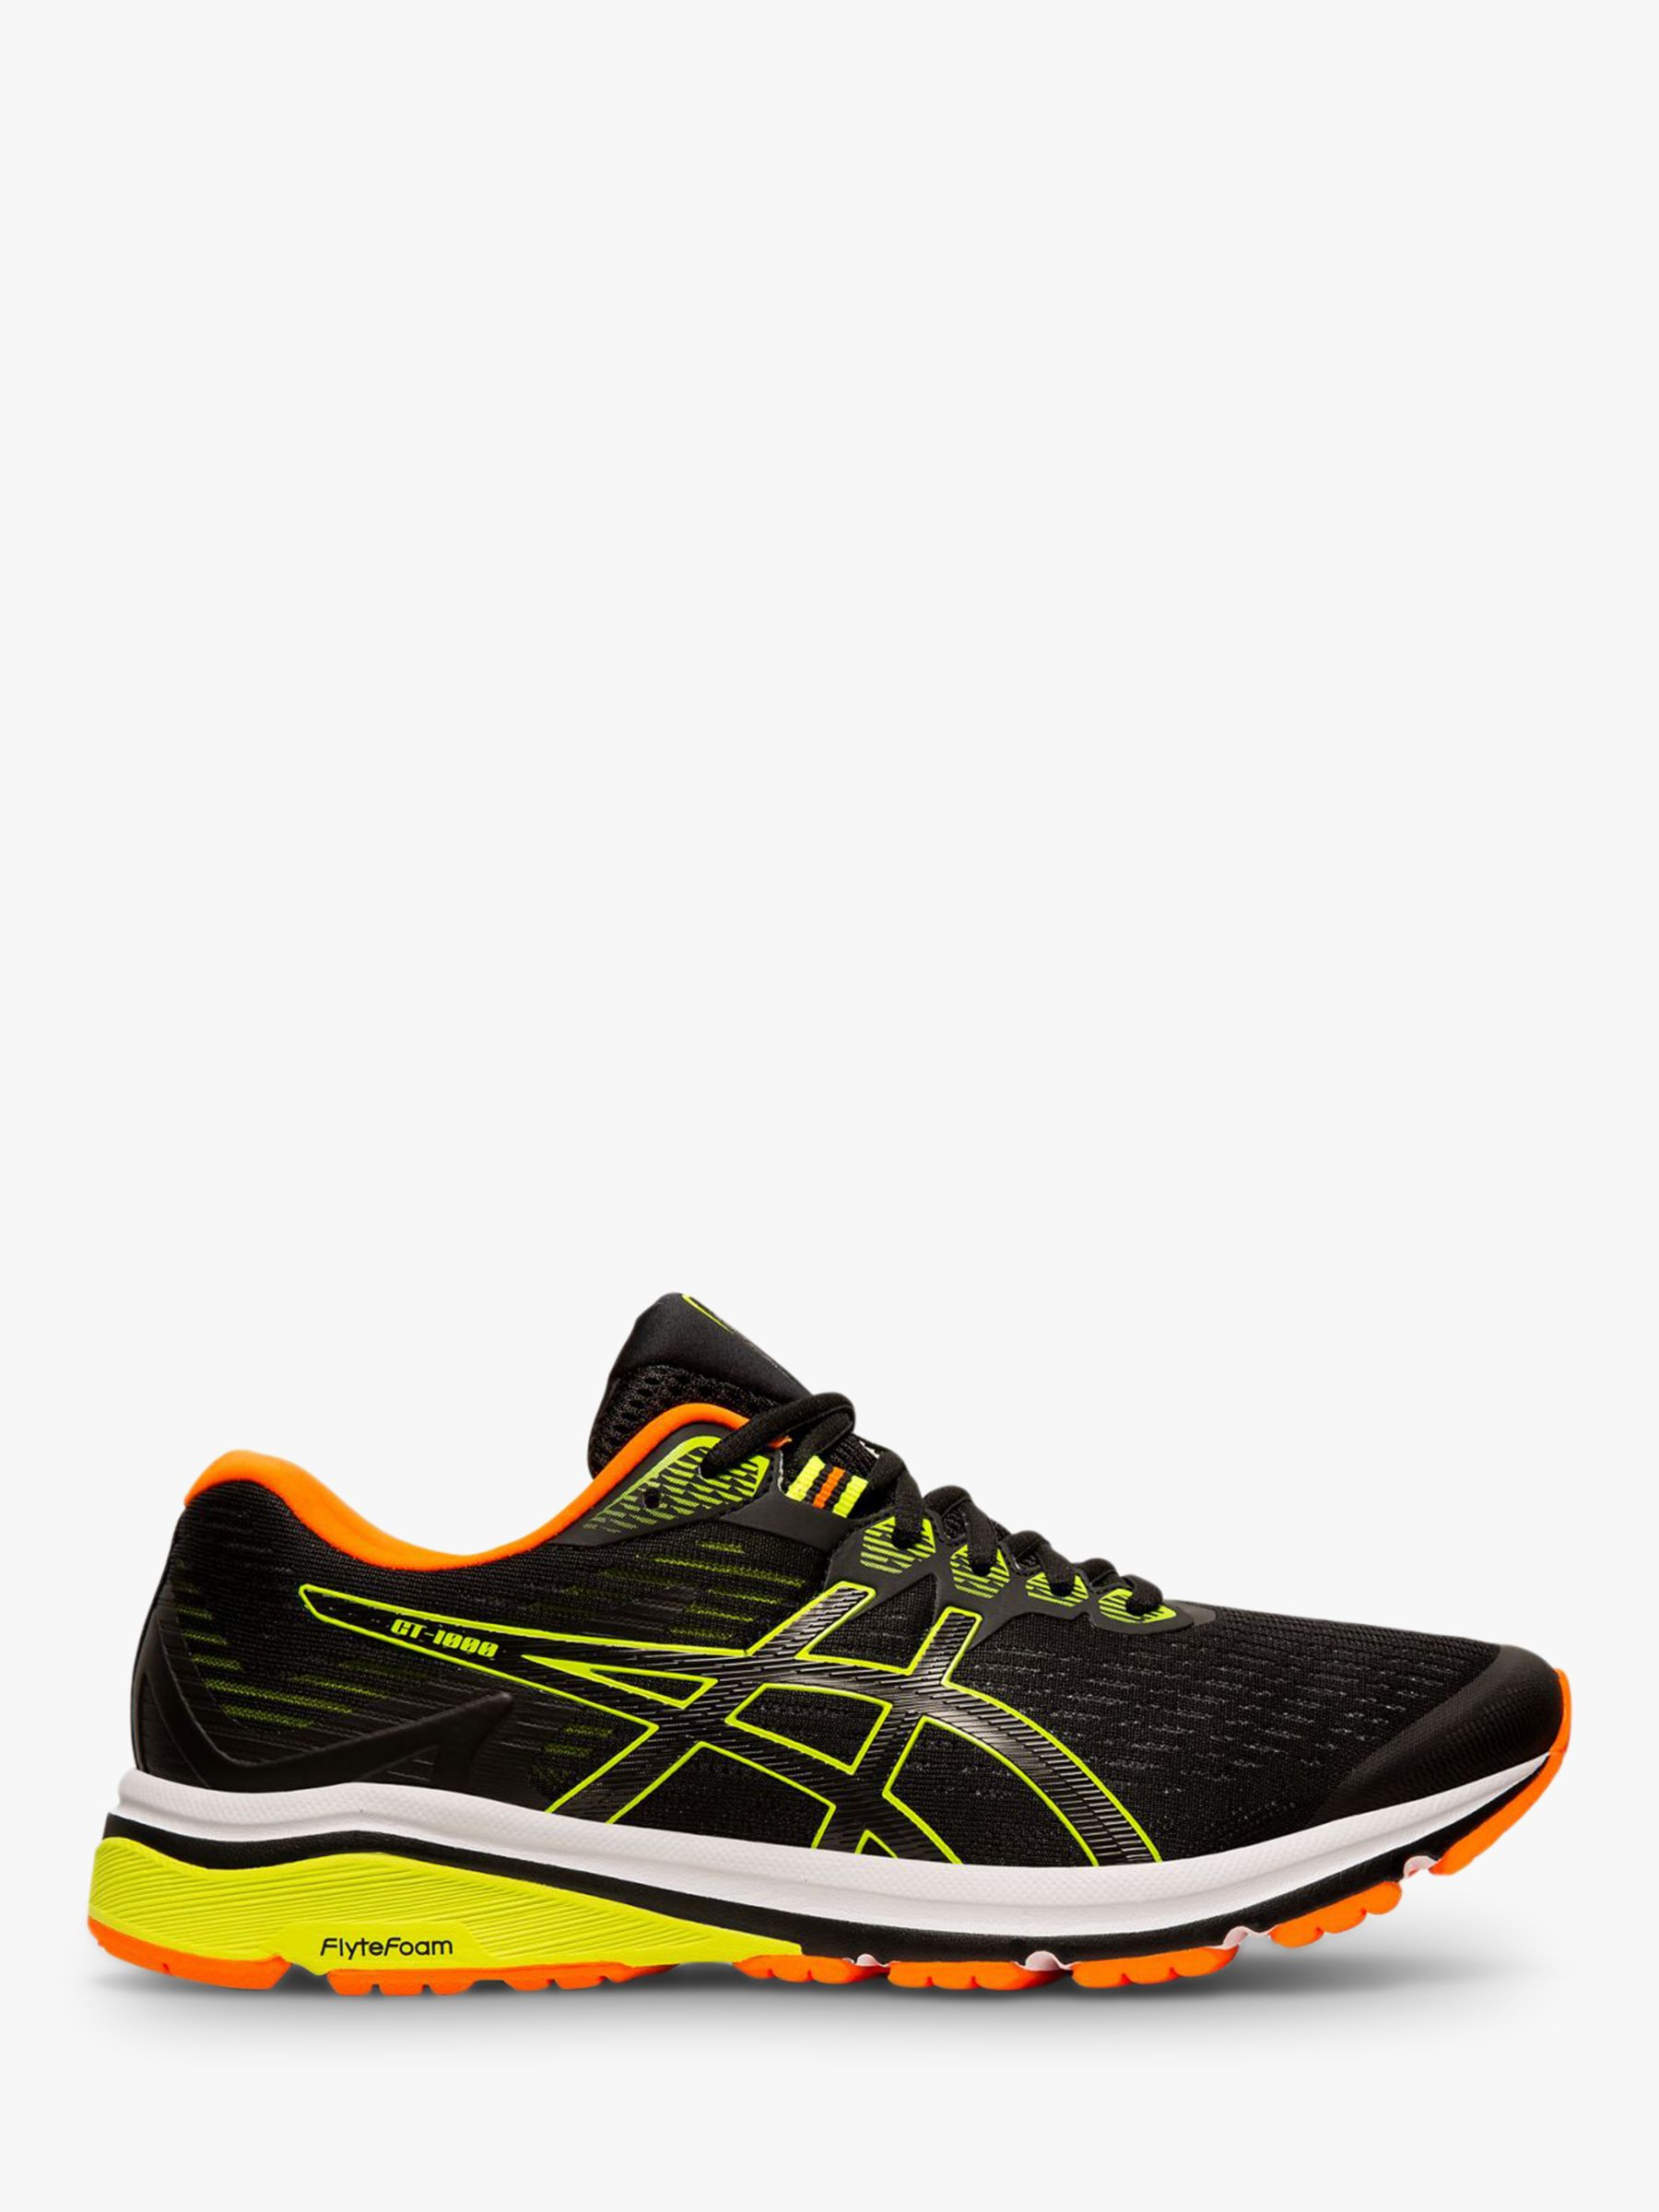 finest selection f4be3 9164d ASICS GT-1000 8 Men's Running Shoes, Black/Safety Yellow